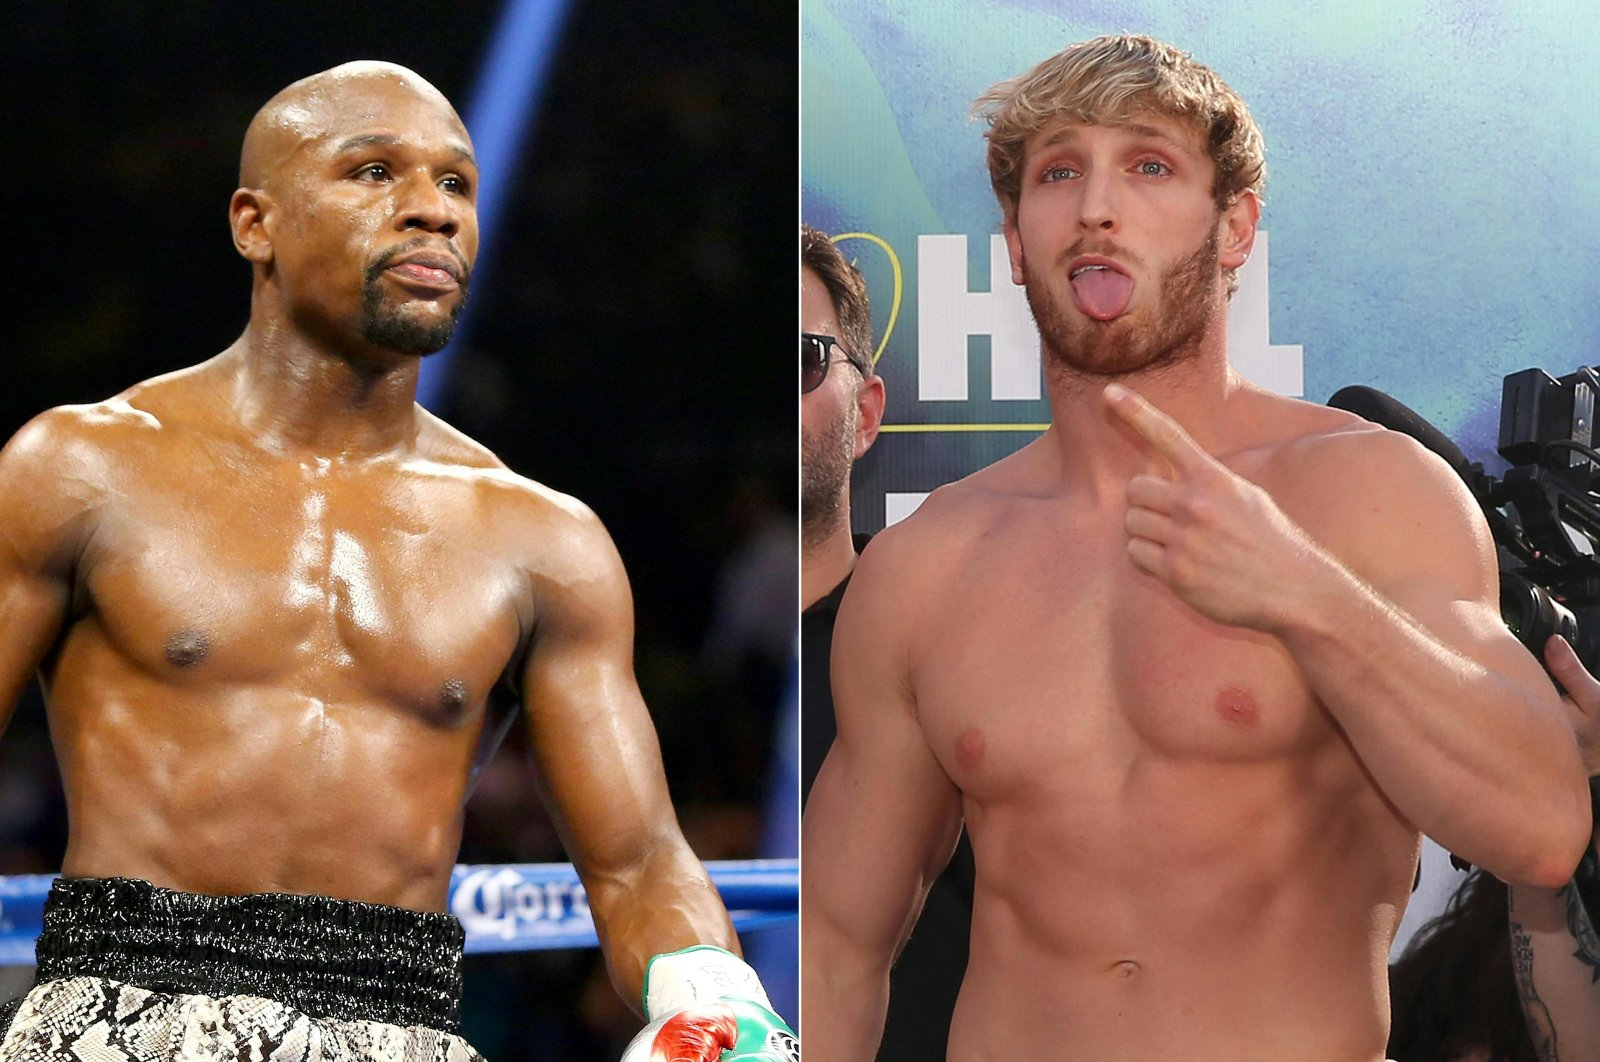 This combination of pictures created on April 27, 2021 shows Floyd Mayweather Jr. (L) during a  welterweight title fight in Las Vegas, U.S., on Sept. 13, 2014 and Logan Paul (R) reacting before an exhibition bout in Los Angeles, U.S., Nov. 8, 2019. (Getty Images via AFP Photo)